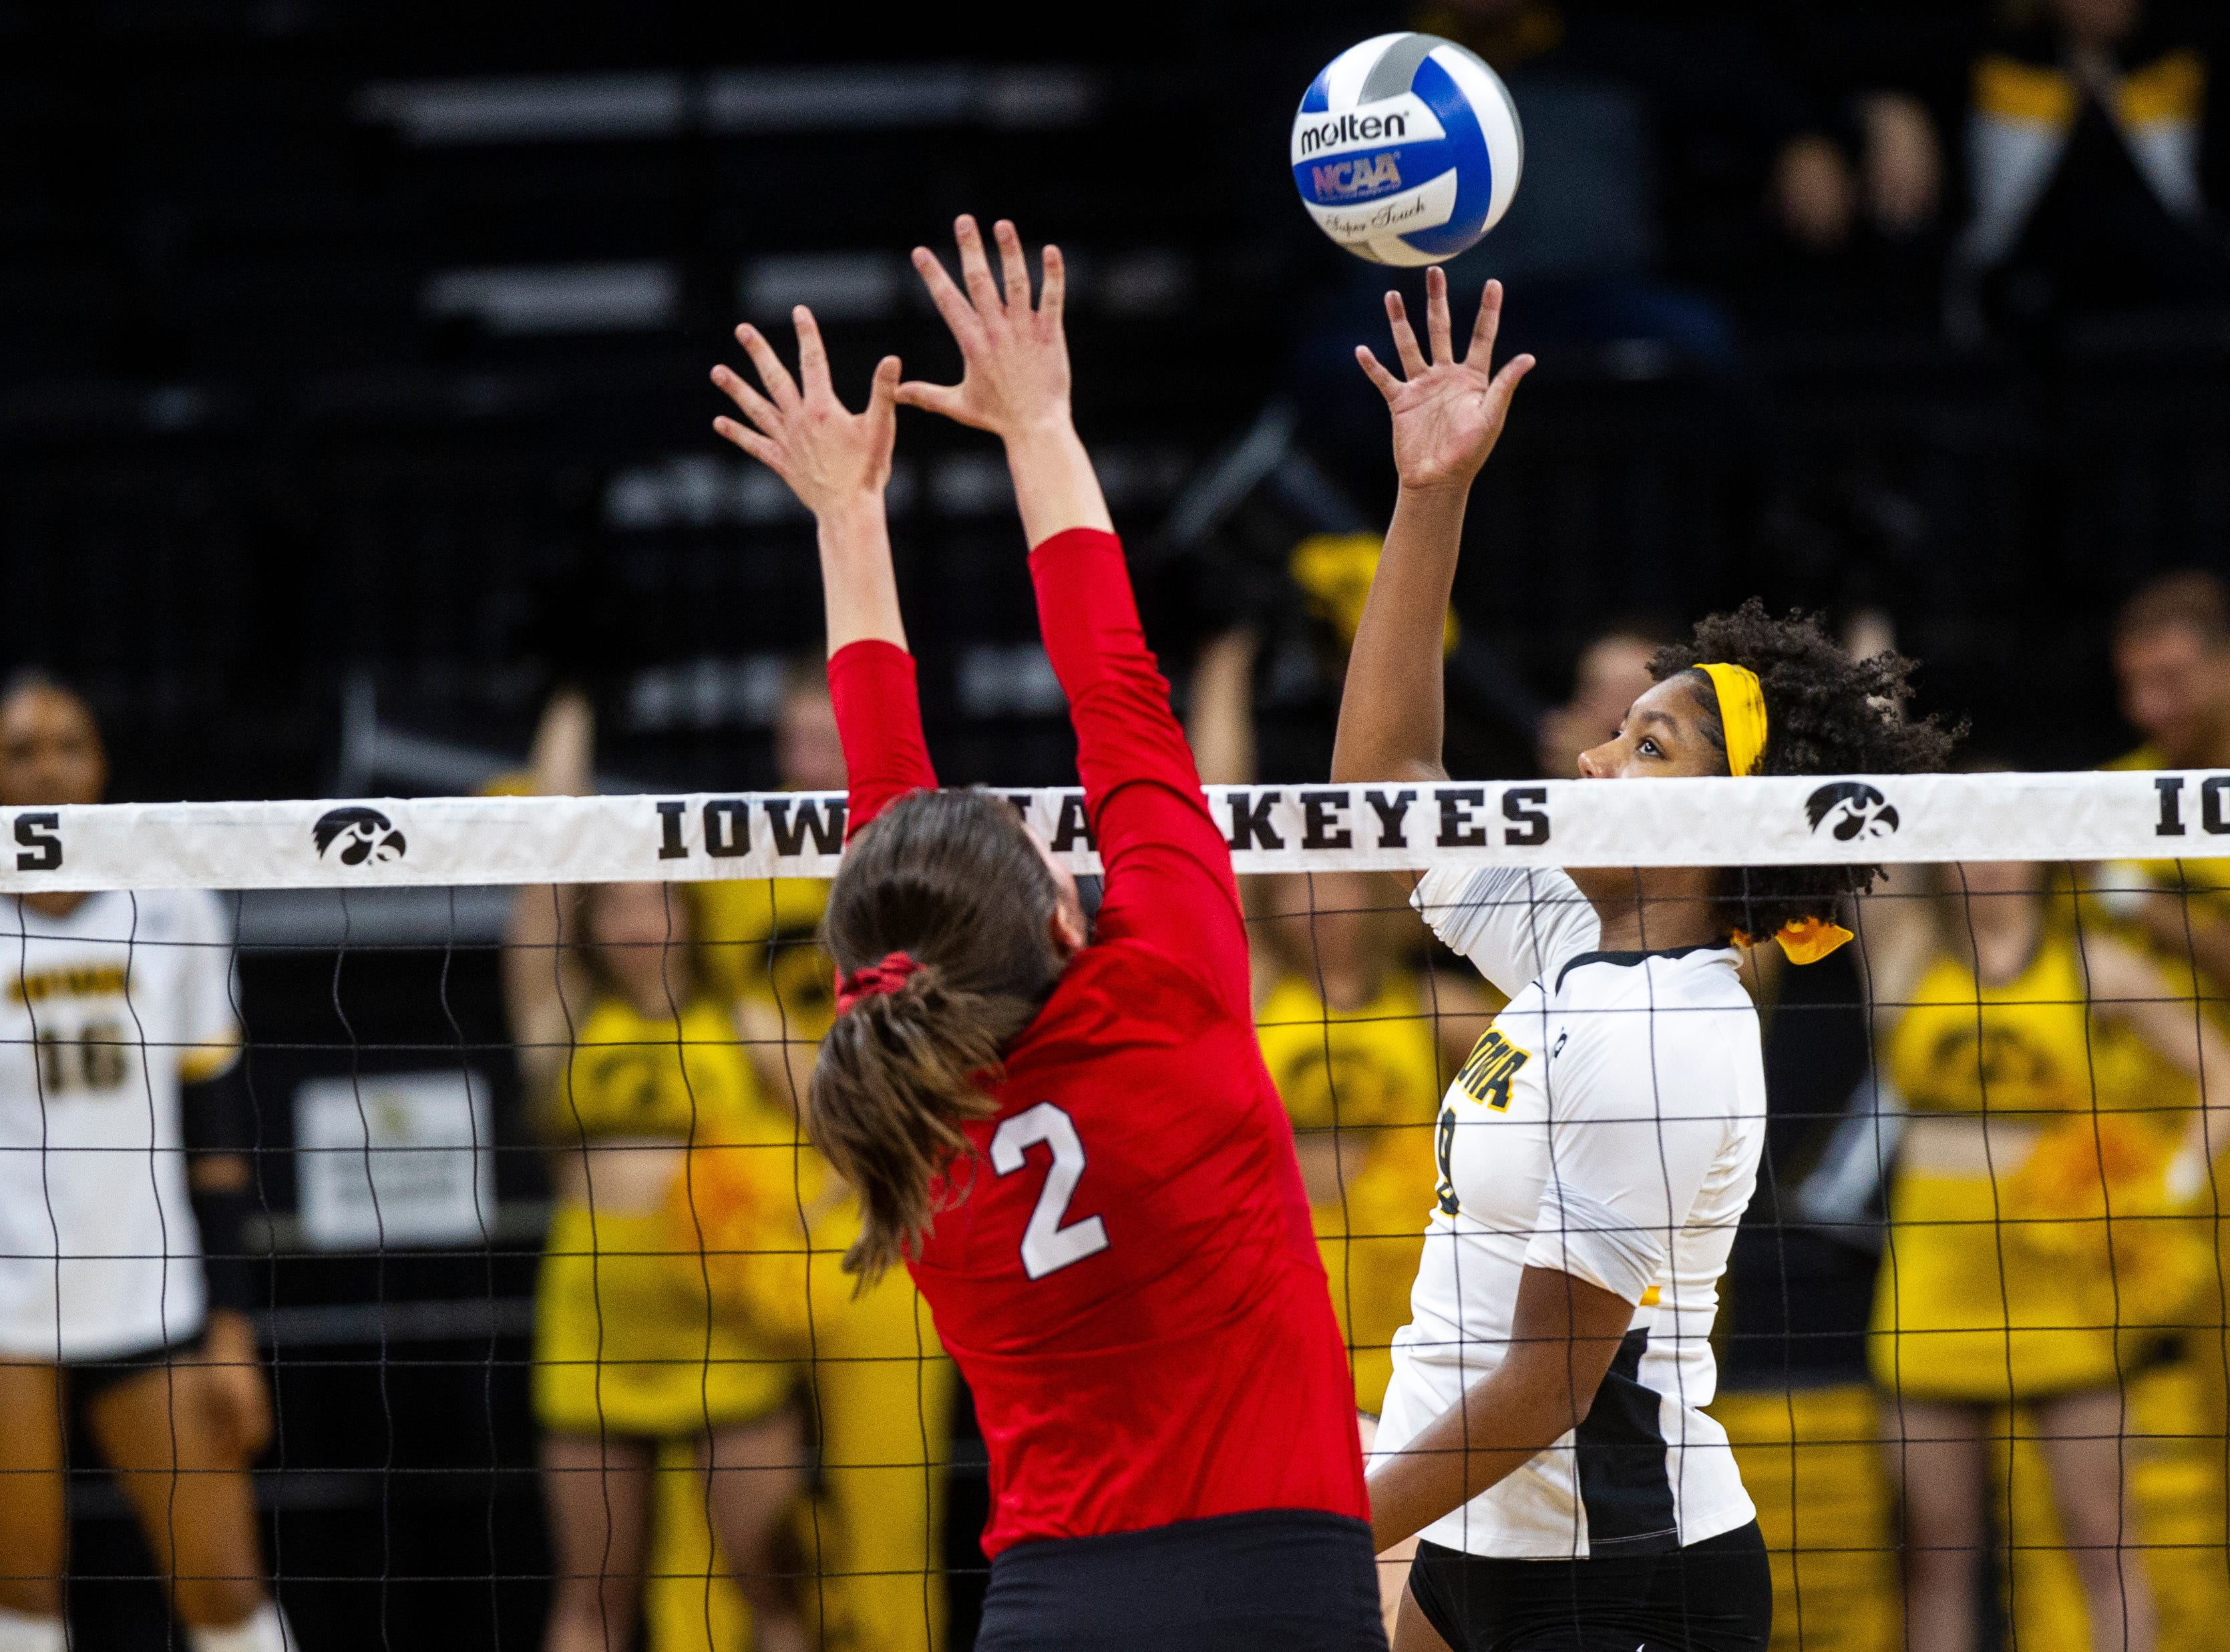 Iowa middle blocker Amiya Jones (9) gets a ball past Nebraska's Mikaela Foecke (2) during an NCAA volleyball game on Wednesday, Nov. 7, 2018, at Carver-Hawkeye Arena in Iowa City.